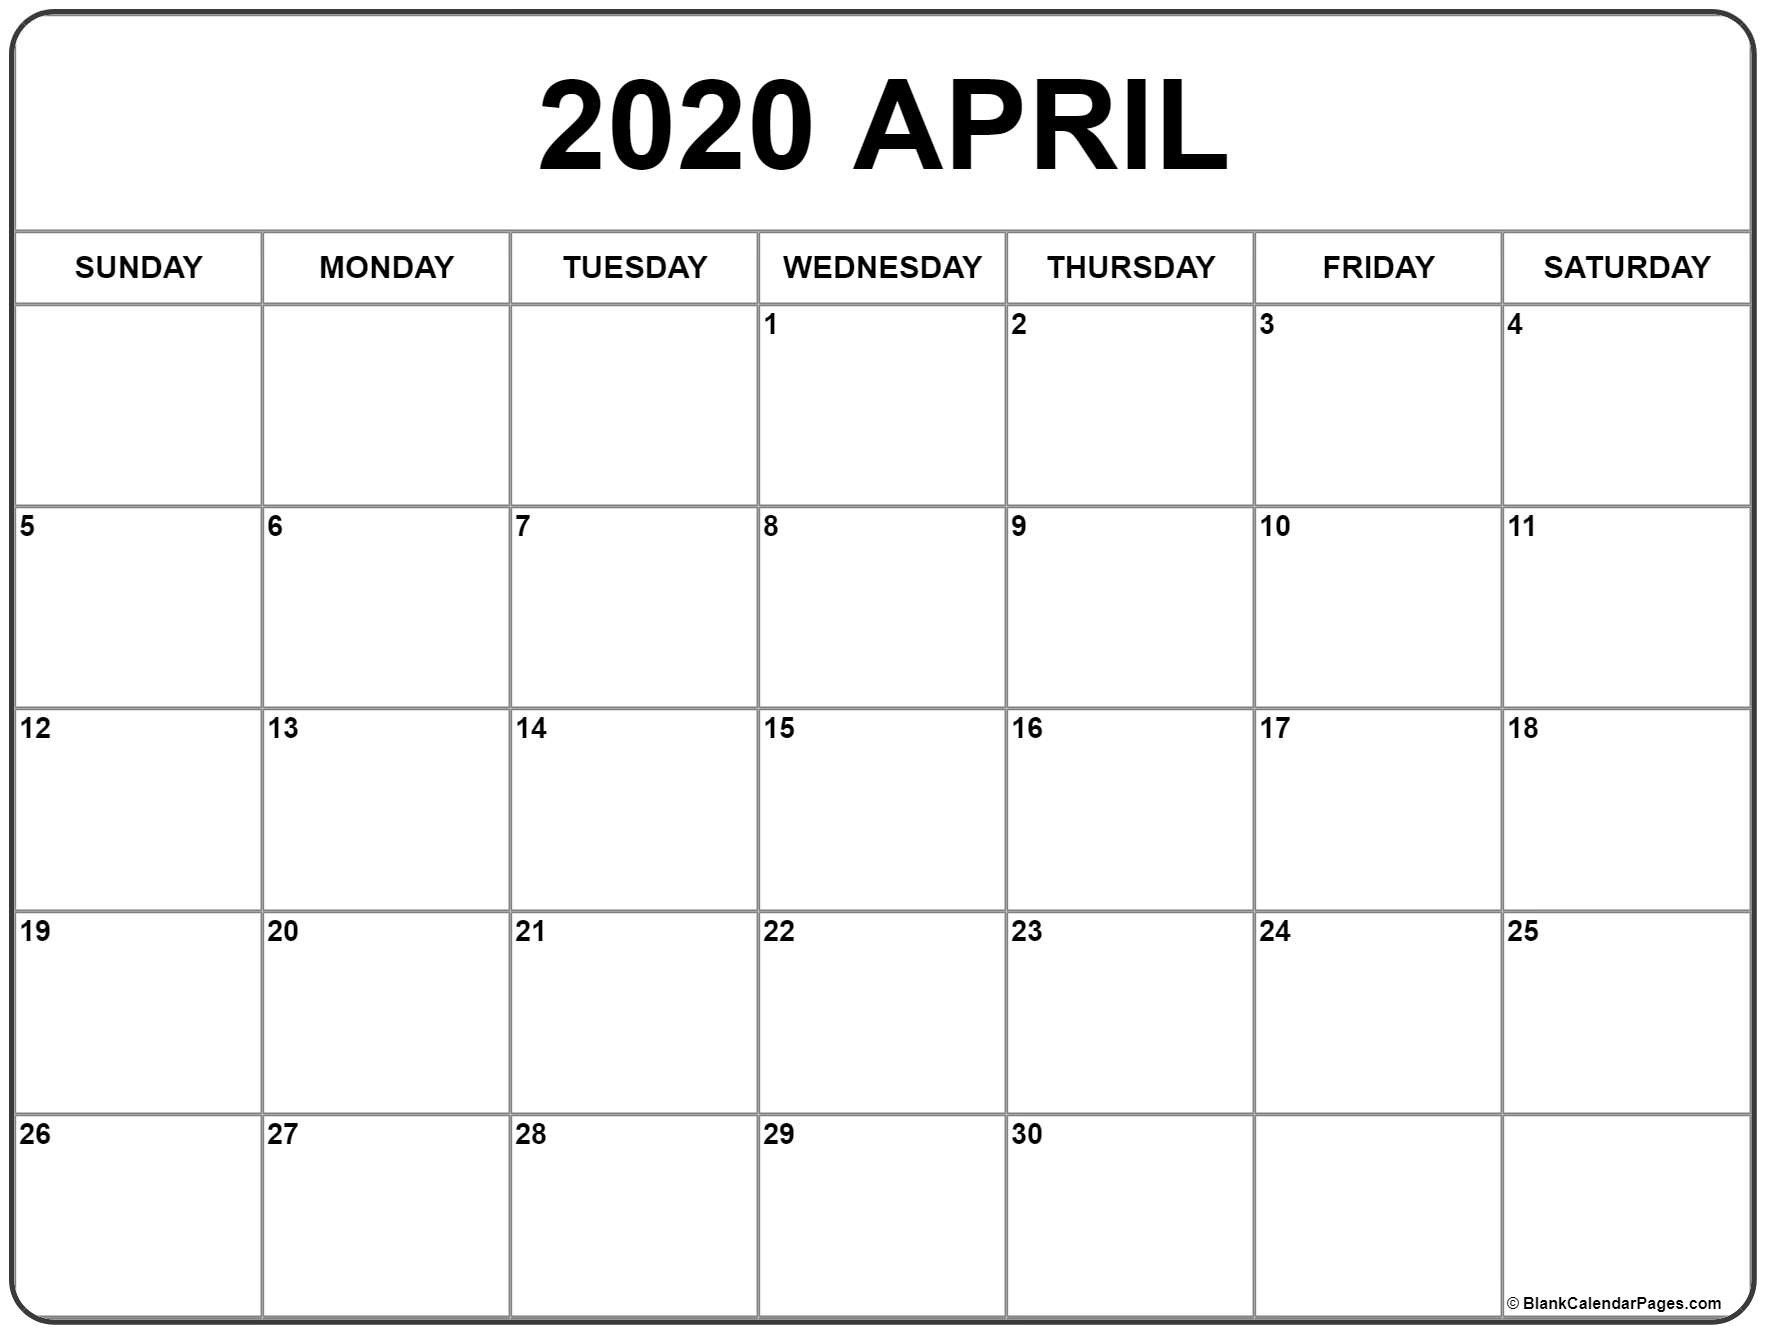 April 2020 Calendar | Free Printable Monthly Calendars-2020 Calendar Template Ms Word